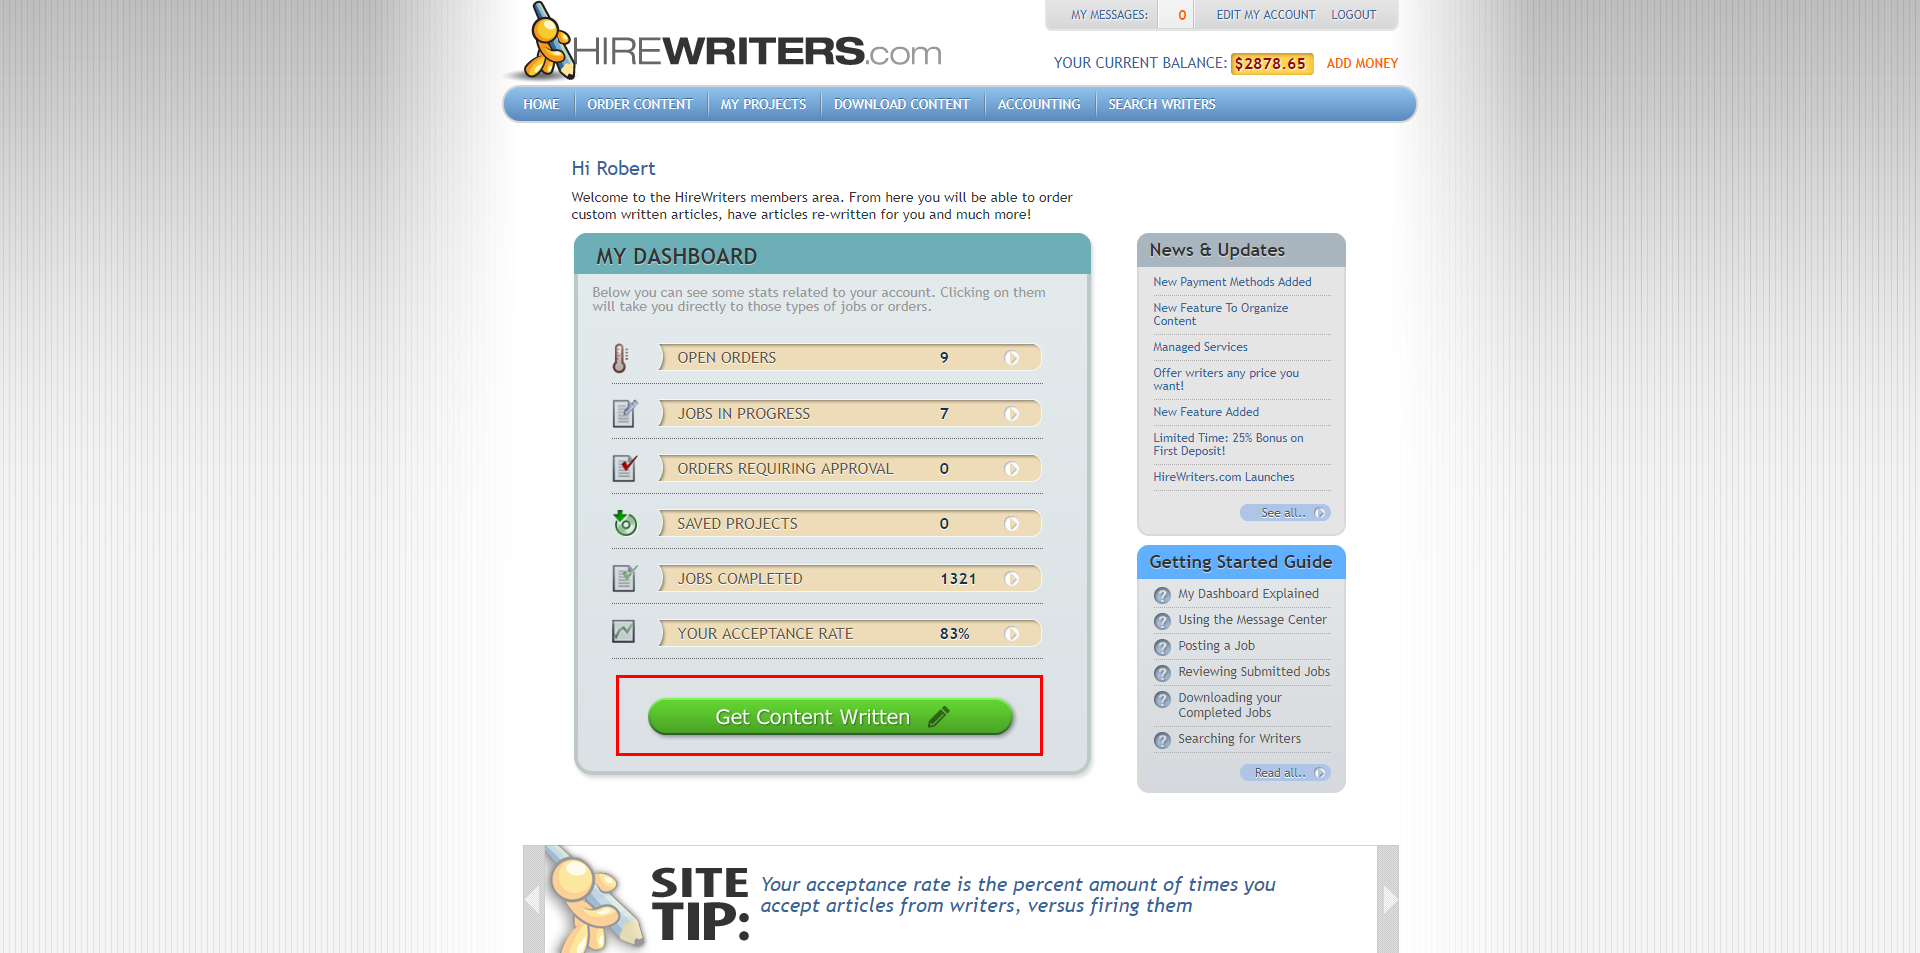 Write or Buy Content - Hire Writers Dashboard